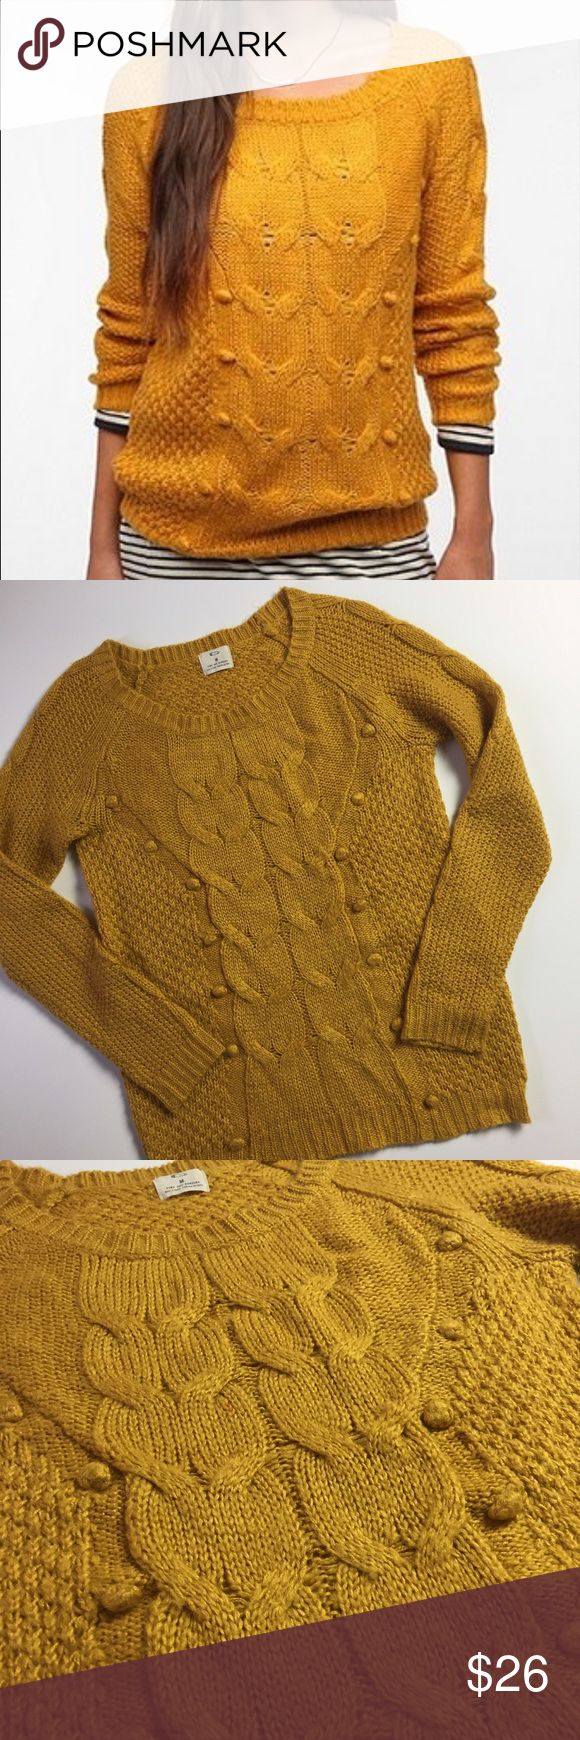 Urban Outfitters Pins & Needles Mustard Sweater Gorgeouuuuuus Pins and Needles mustard marigold sweater. Excellent condition. Perfect to pair with dark wash jeans and ankle booties! Winter wardrobe essential! Urban Outfitters Sweaters Crew & Scoop Necks